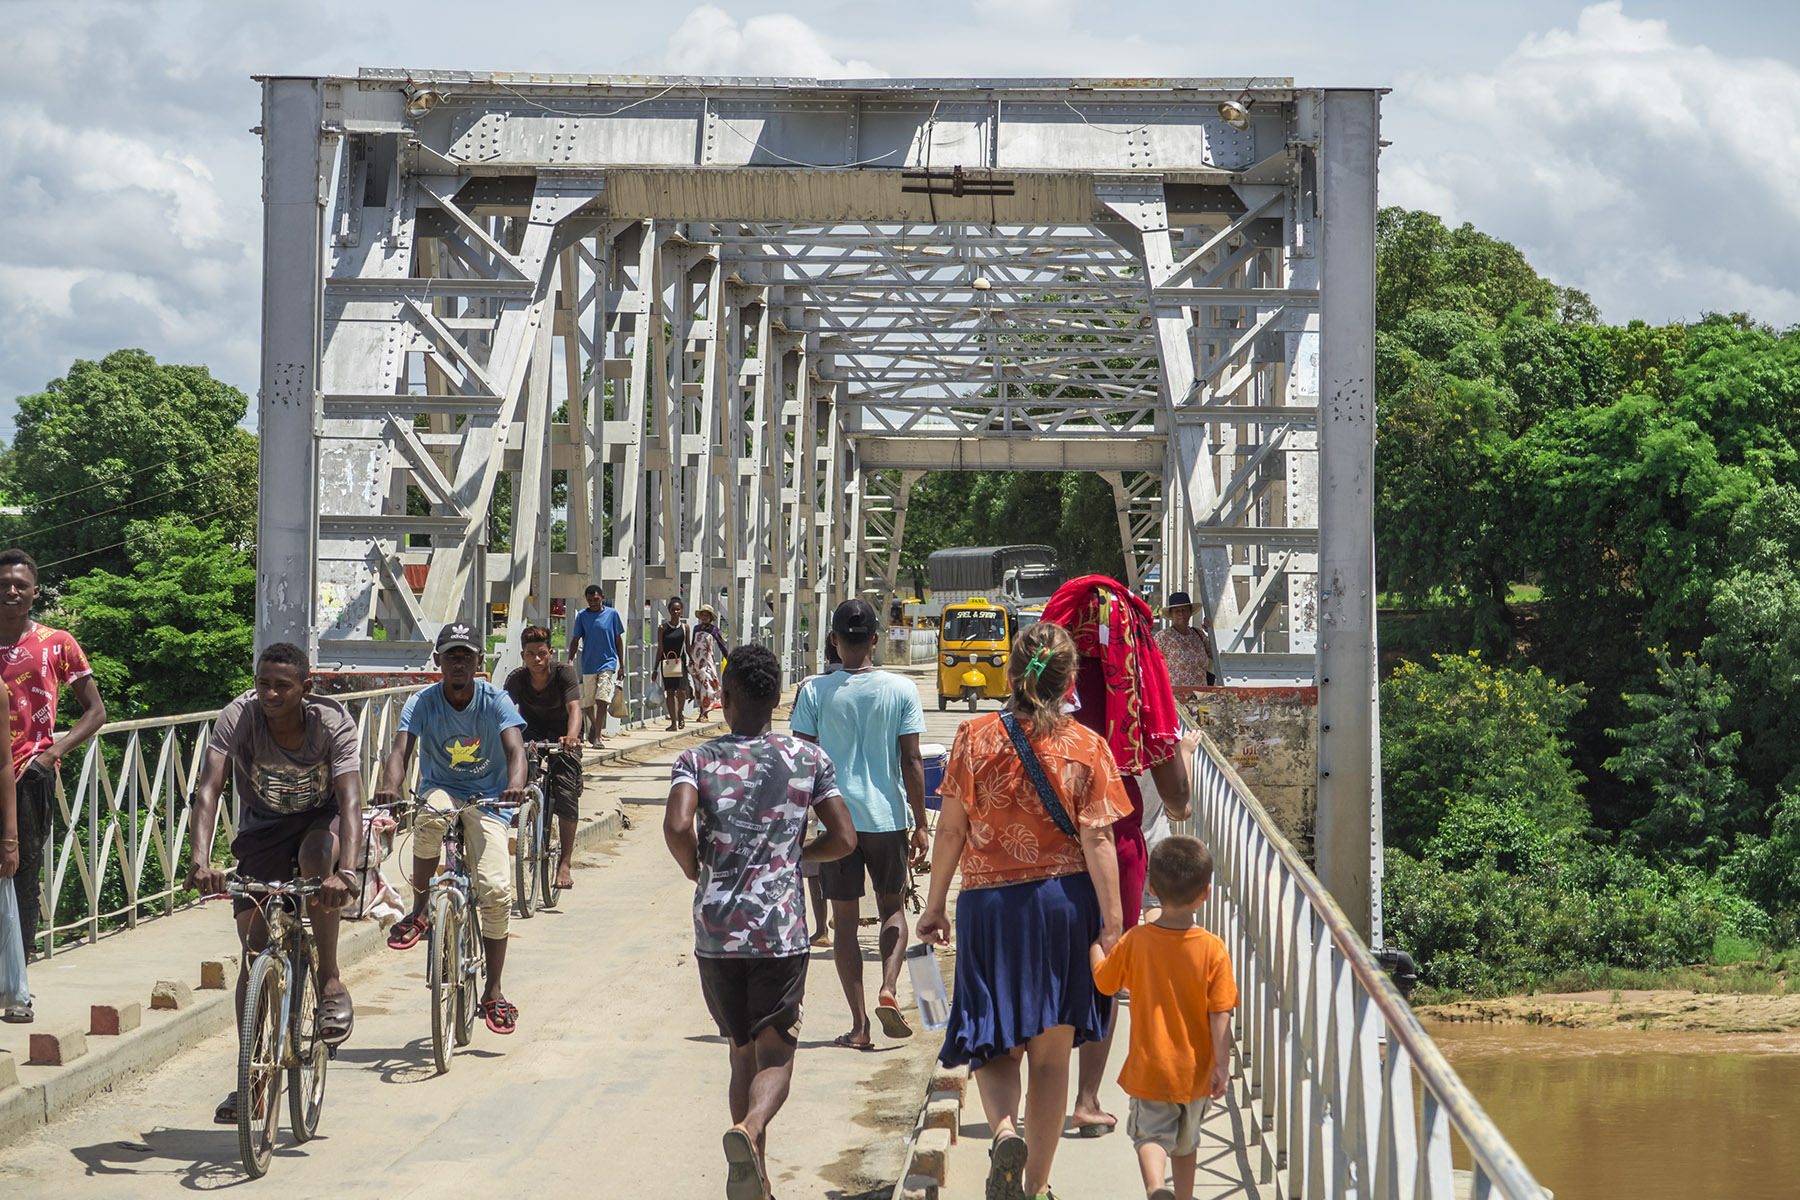 A busy road - the crossing of the Mahavavy river, entering into the central part of Ambilobe.  Lora is leading our boys back home after a local ministry outreach.